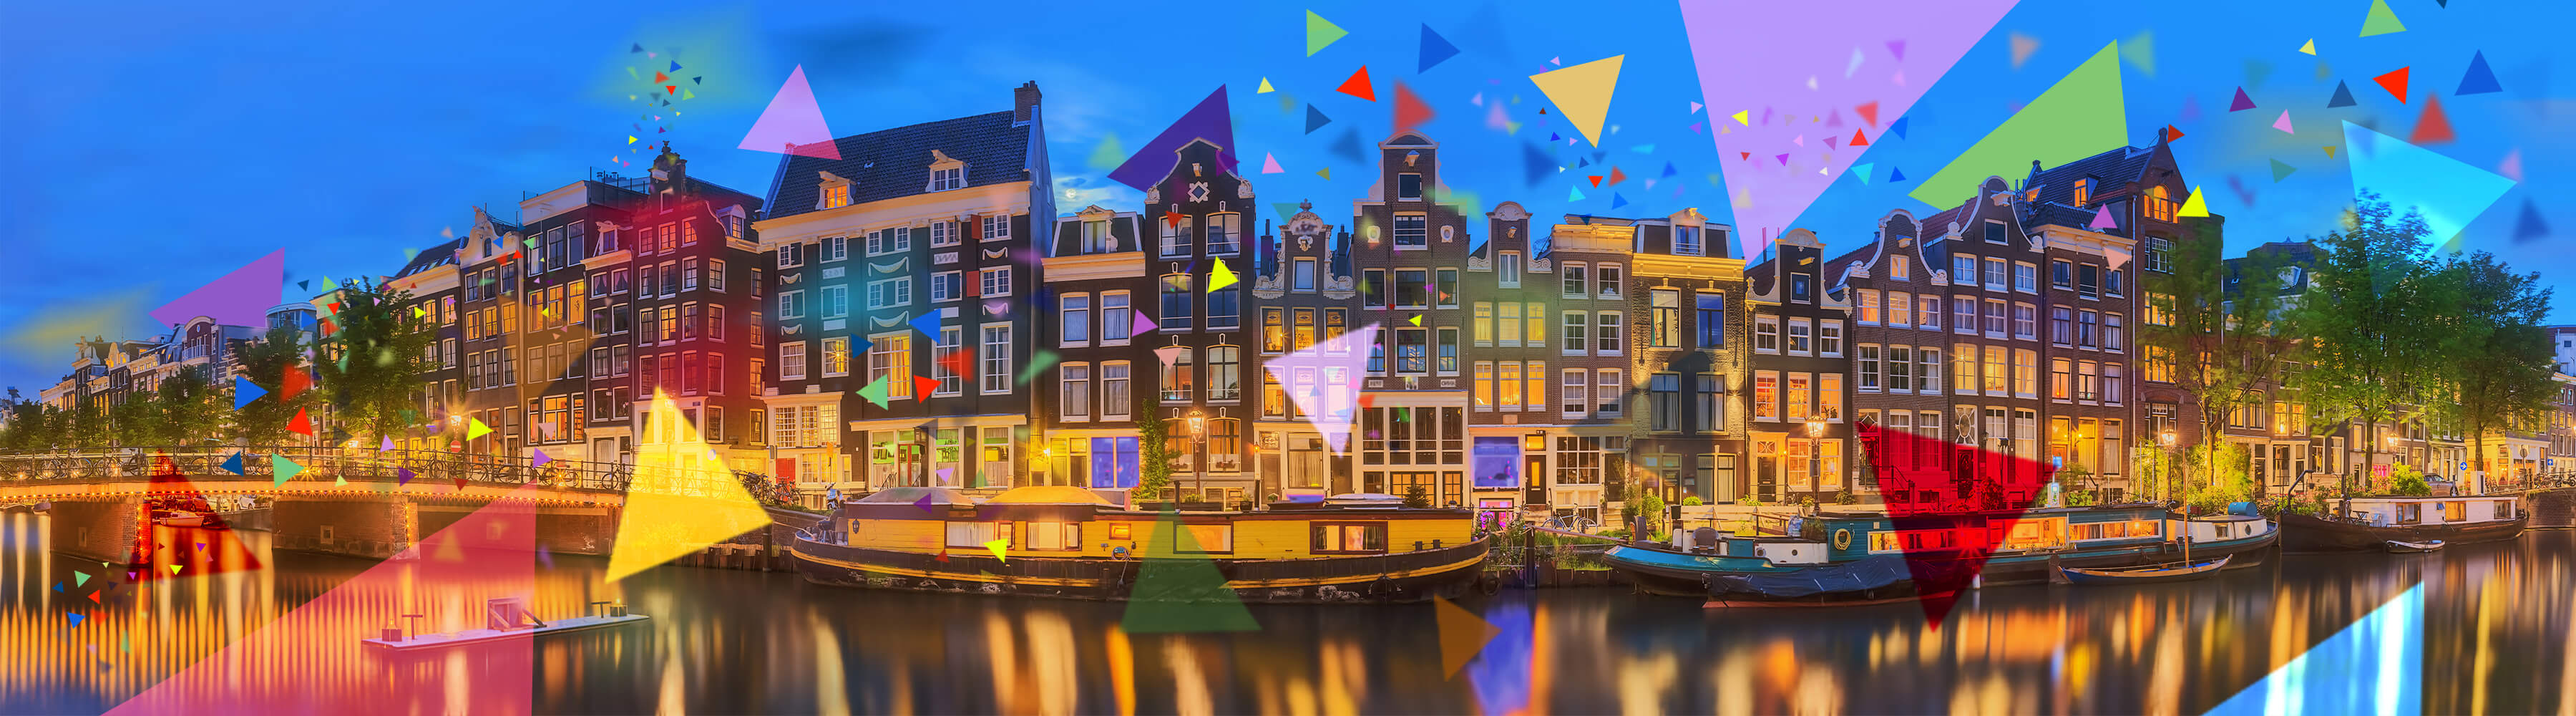 Meet us at the next DrupalCon at Amsterdam